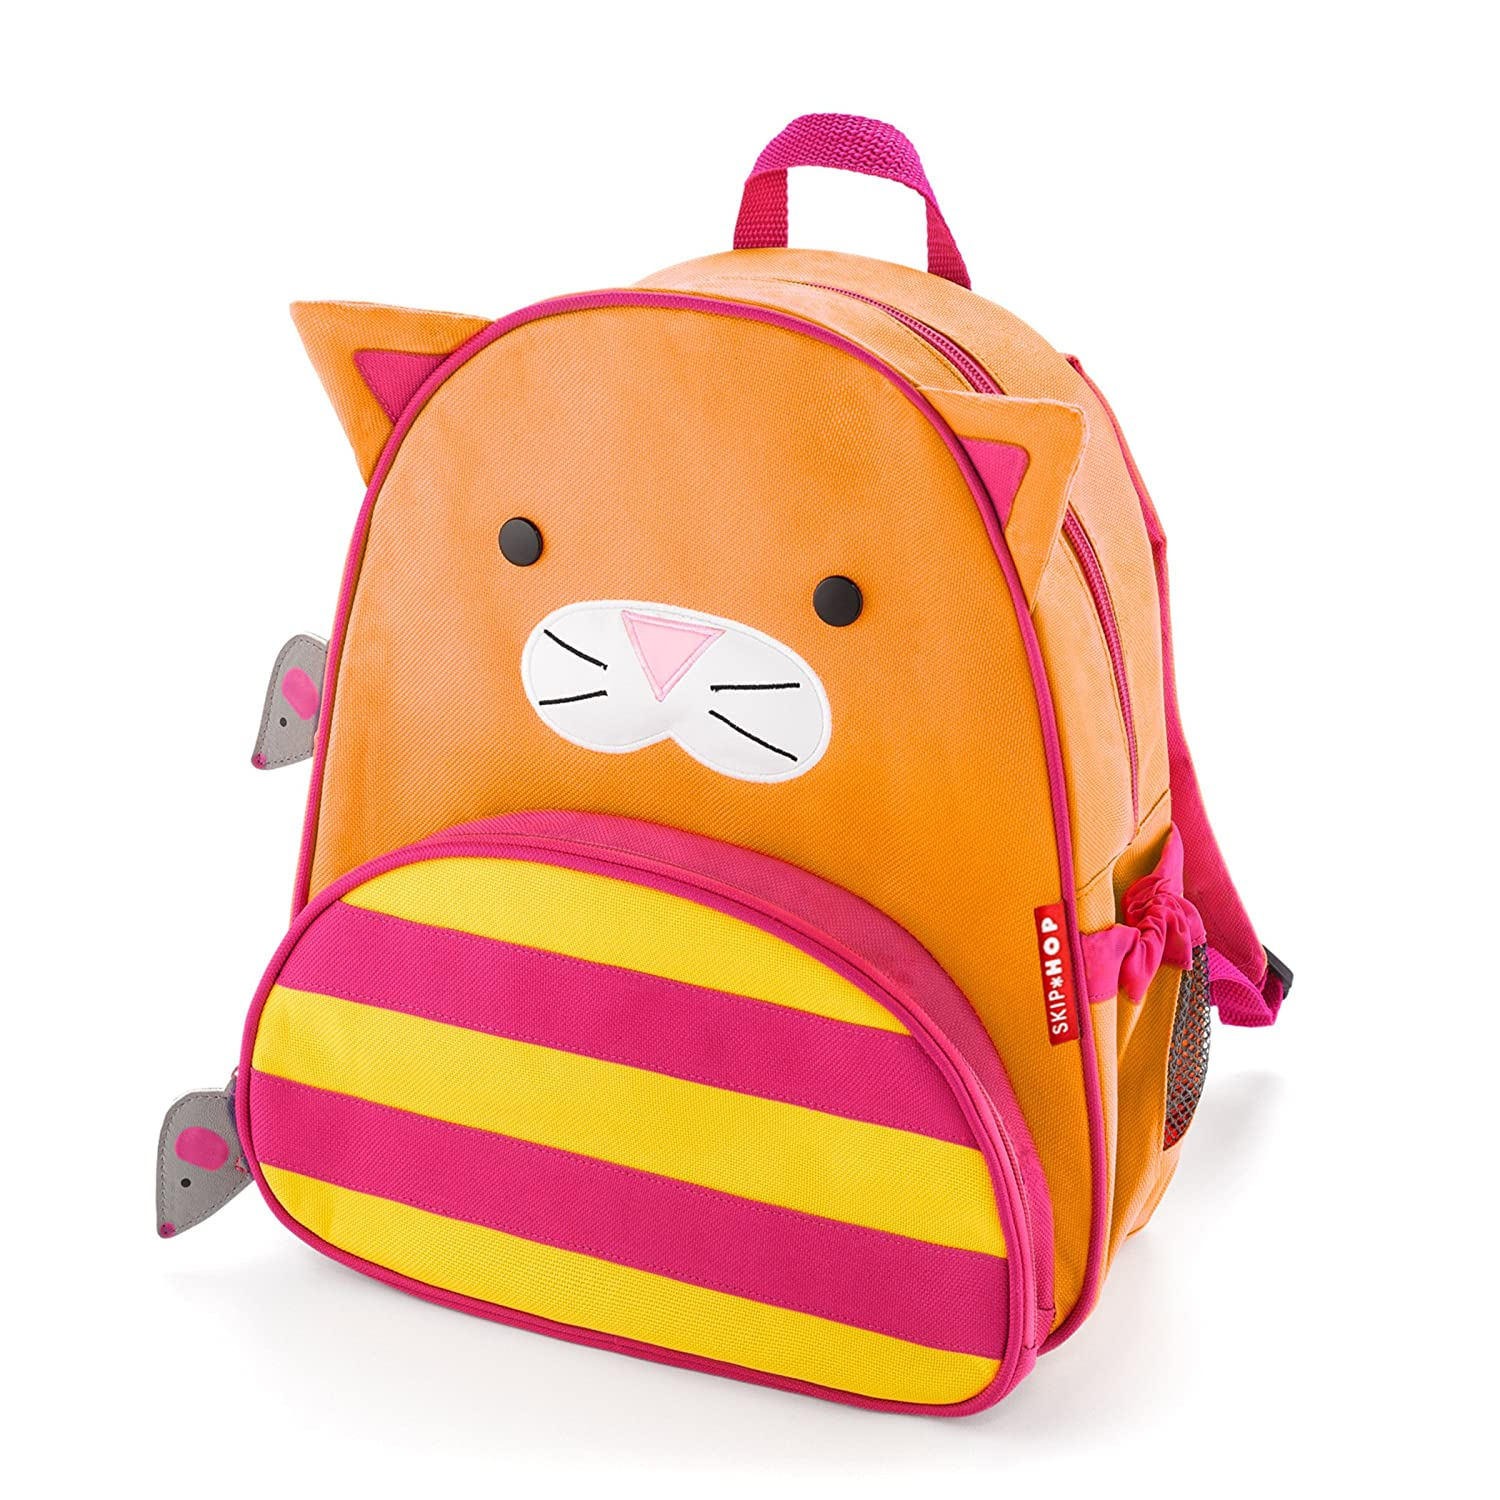 Skip Hop Zoo Insulated Toddler Backpack Cheddar Cow, 12 School Bag, 12 School Bag 210226